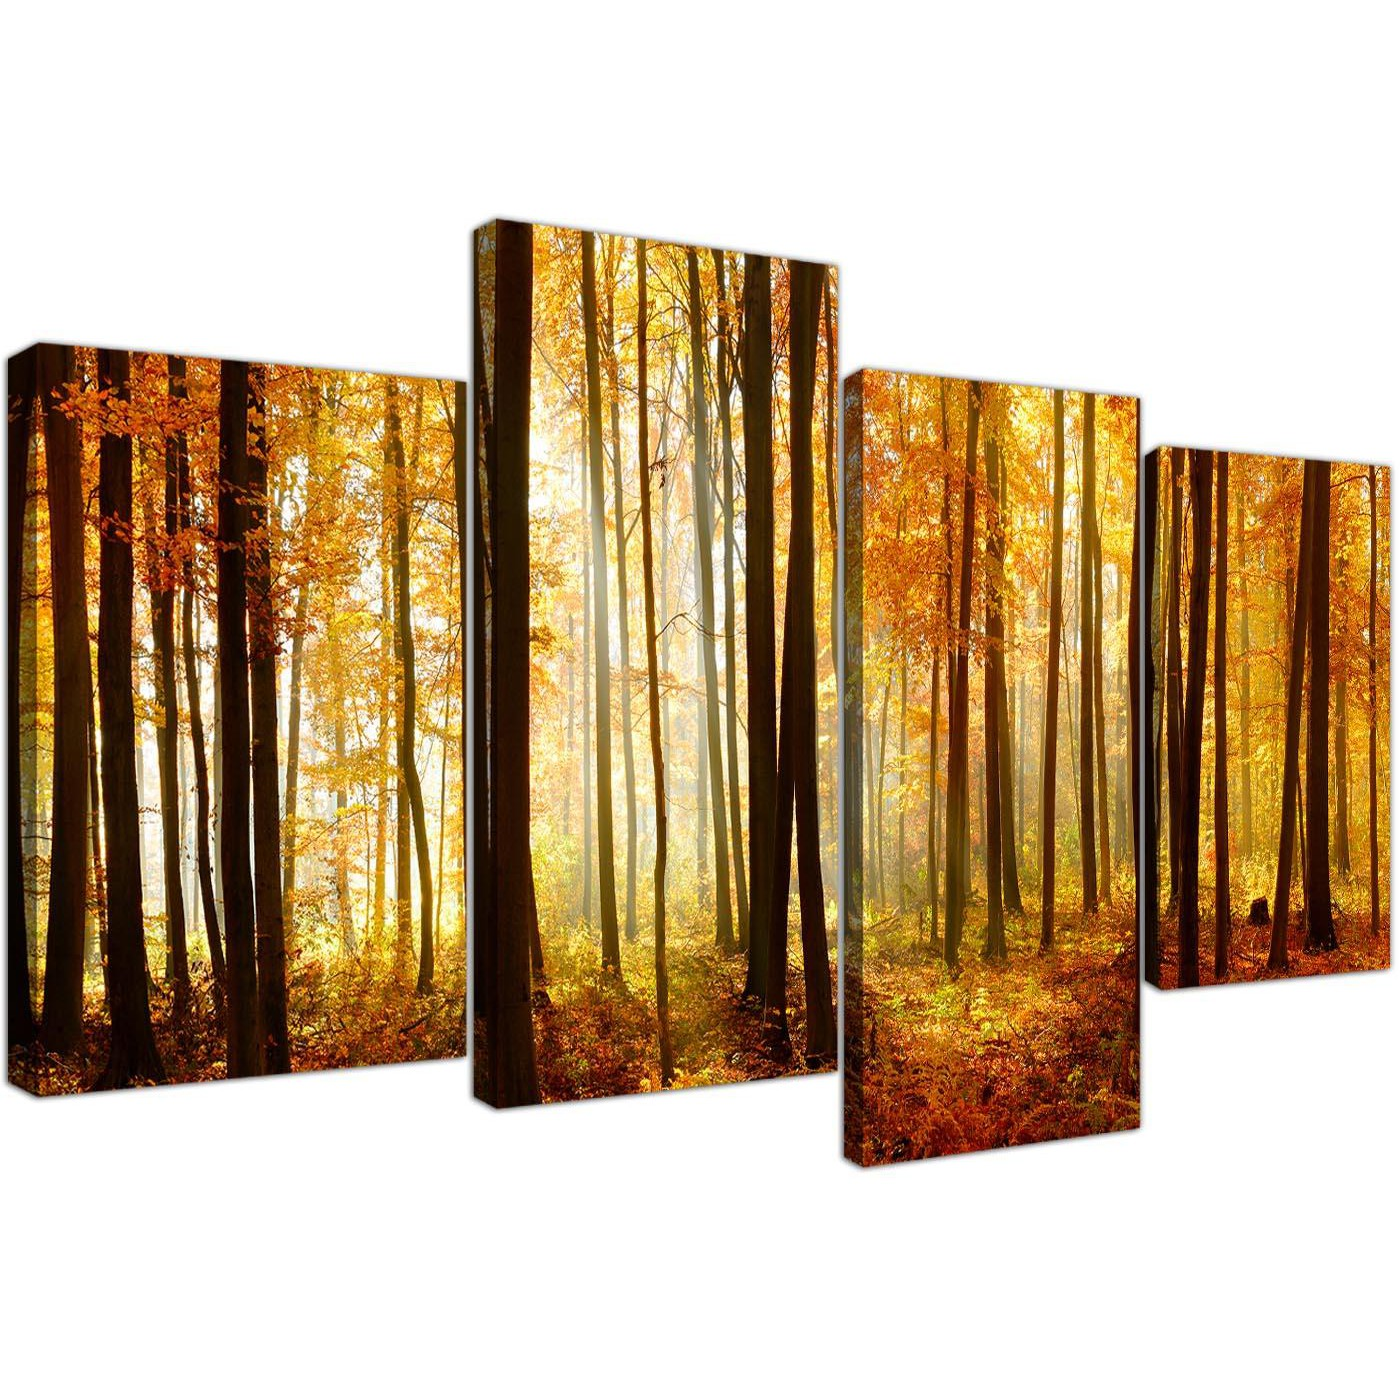 Black & White Orange Forest Trees Canvas Print Wall Art